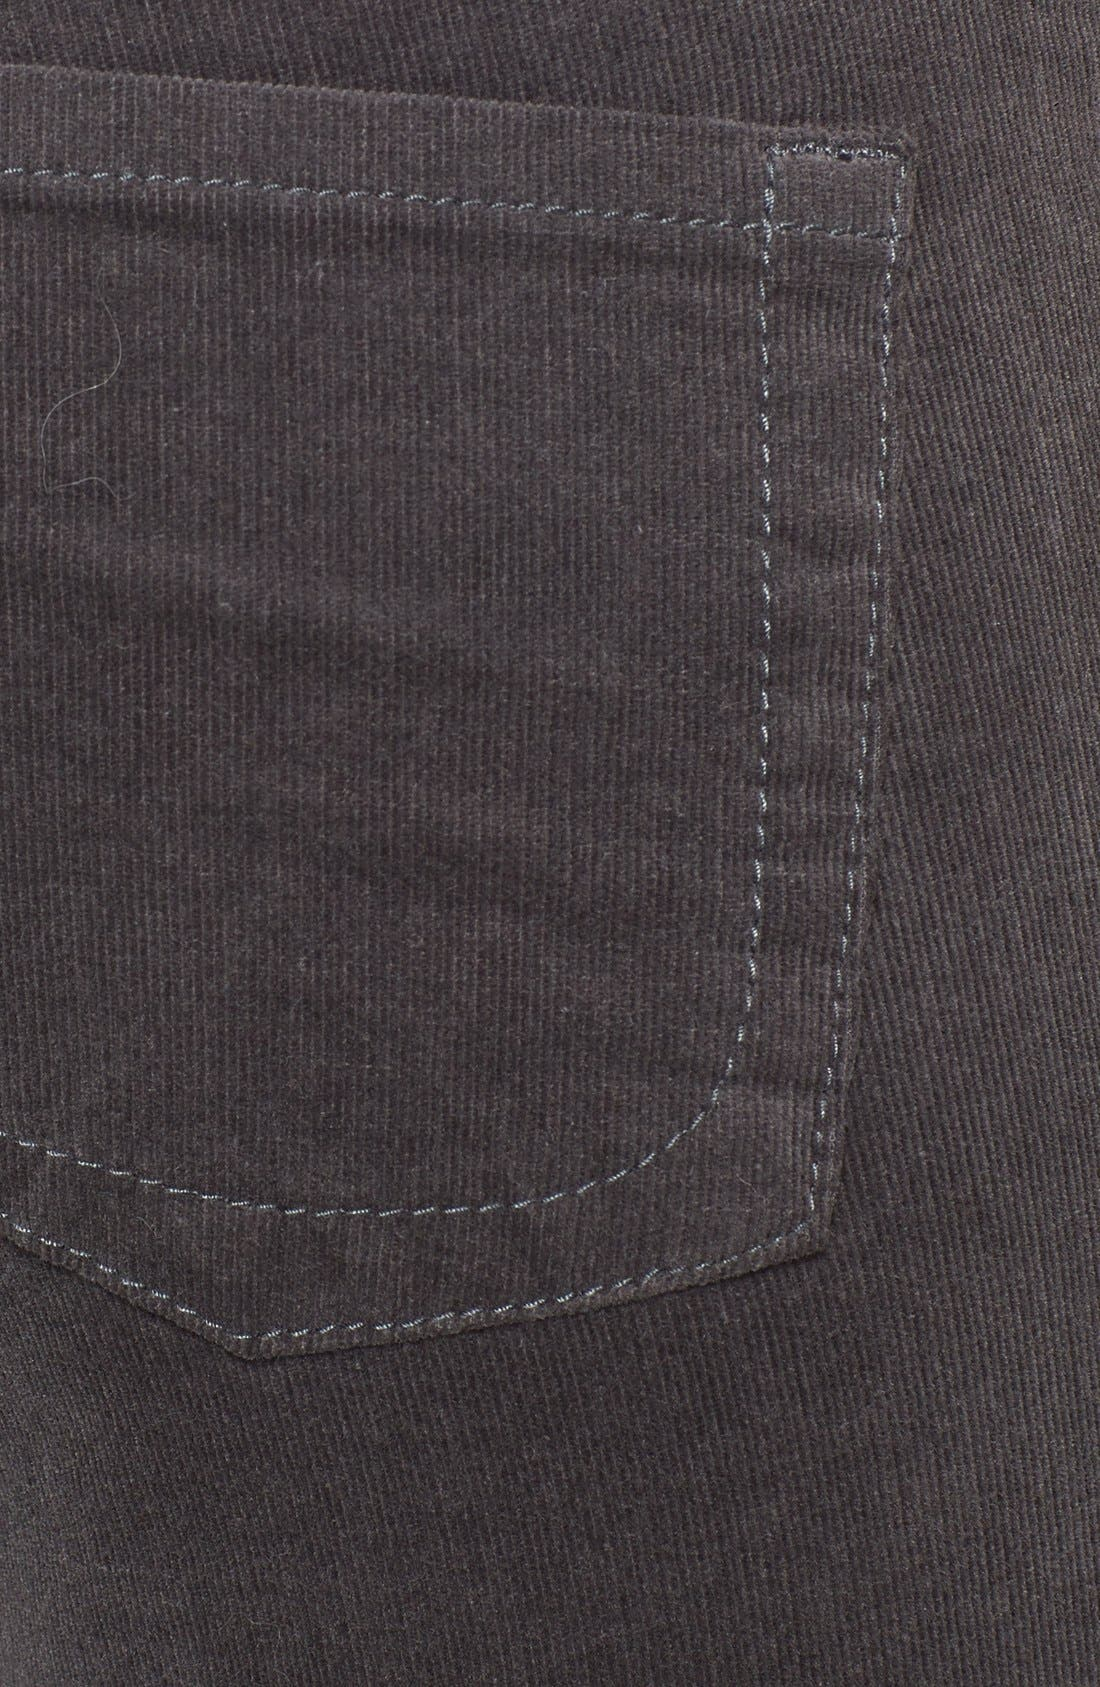 Baby Bootcut Corduroy Jeans,                             Alternate thumbnail 119, color,